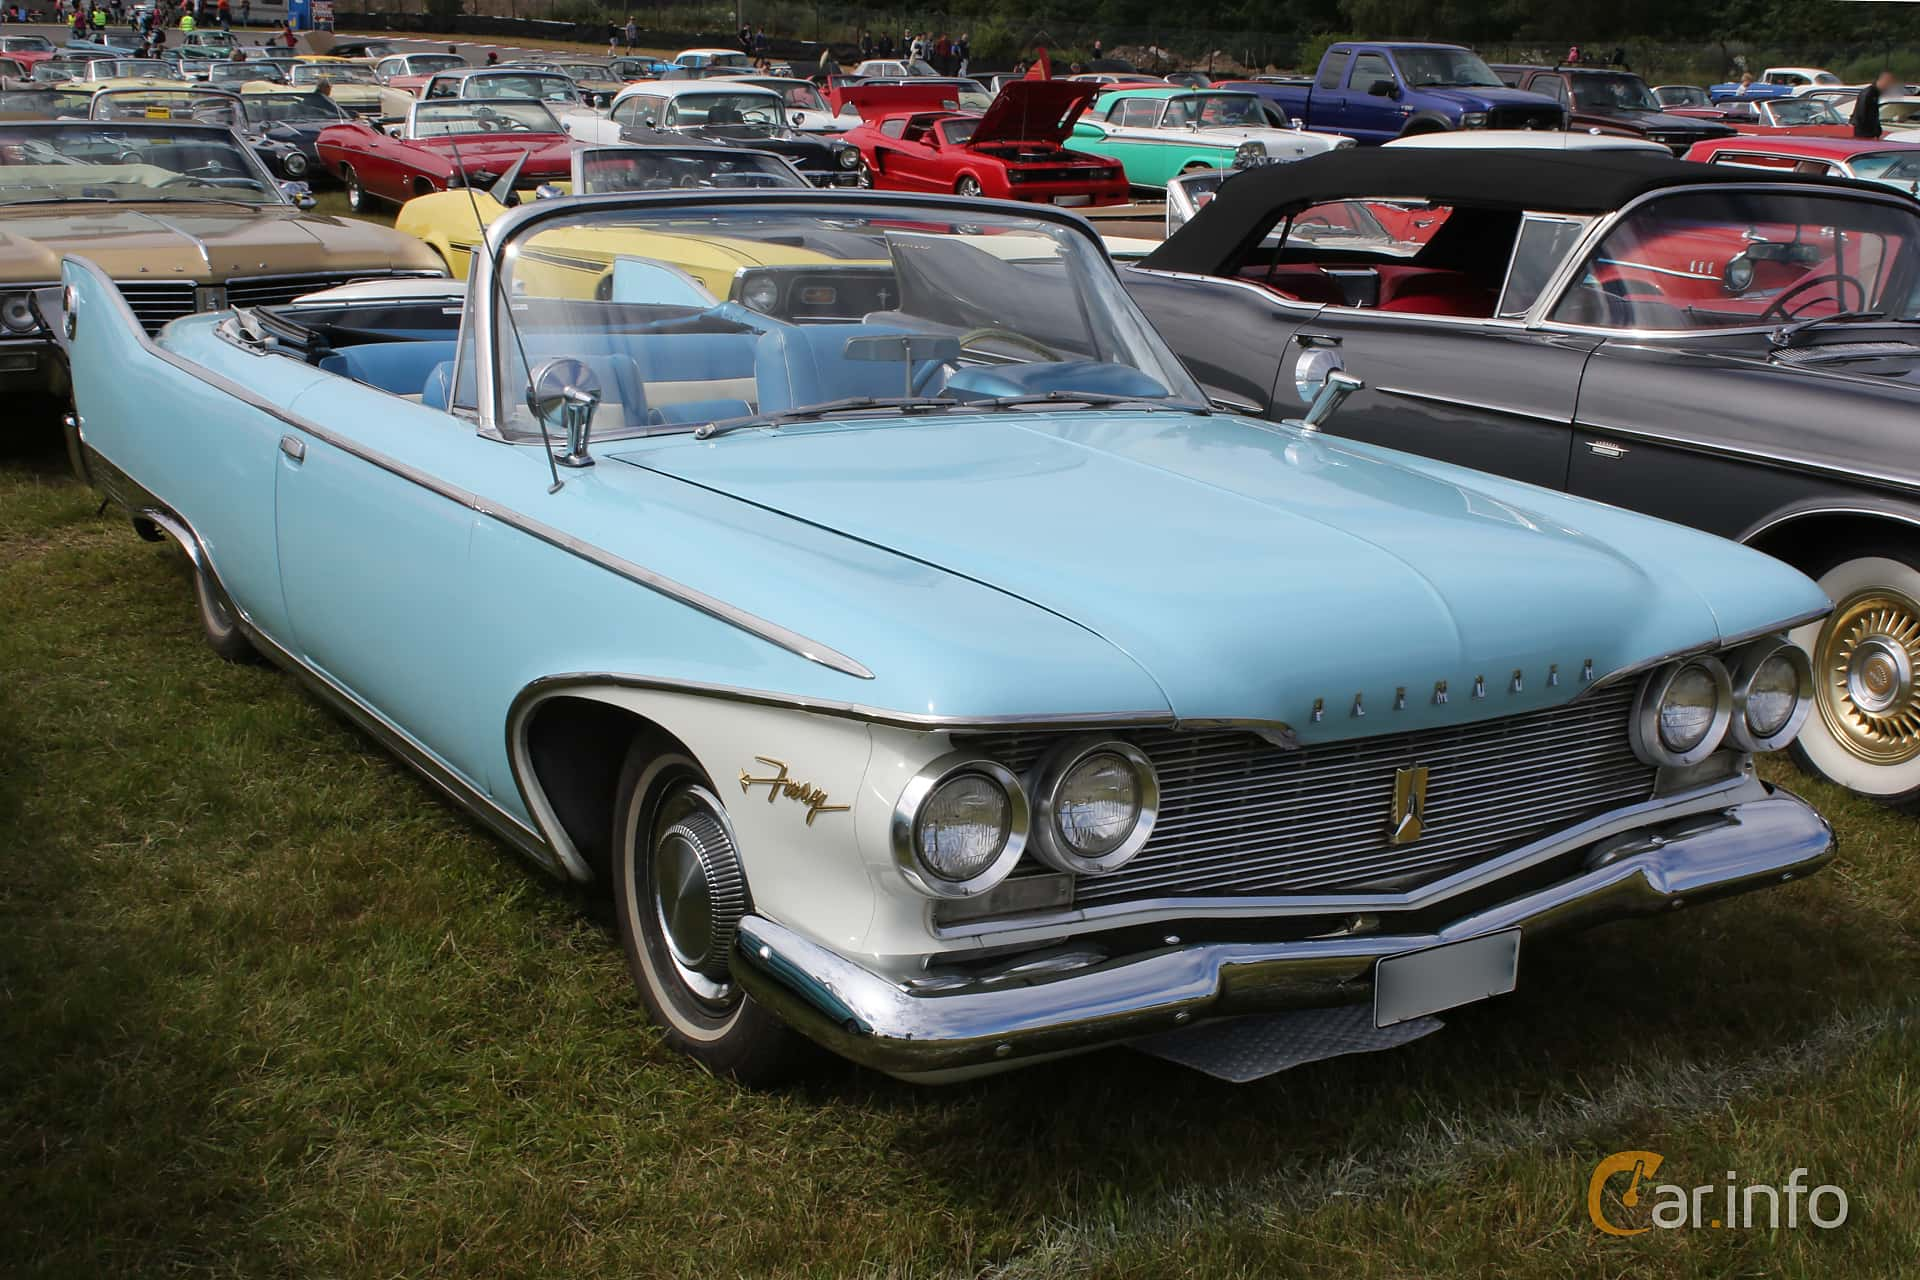 5 Images Of Plymouth Fury Convertible 59 V8 Powerflite 1960 By Espee Front Side At Wheels Wings